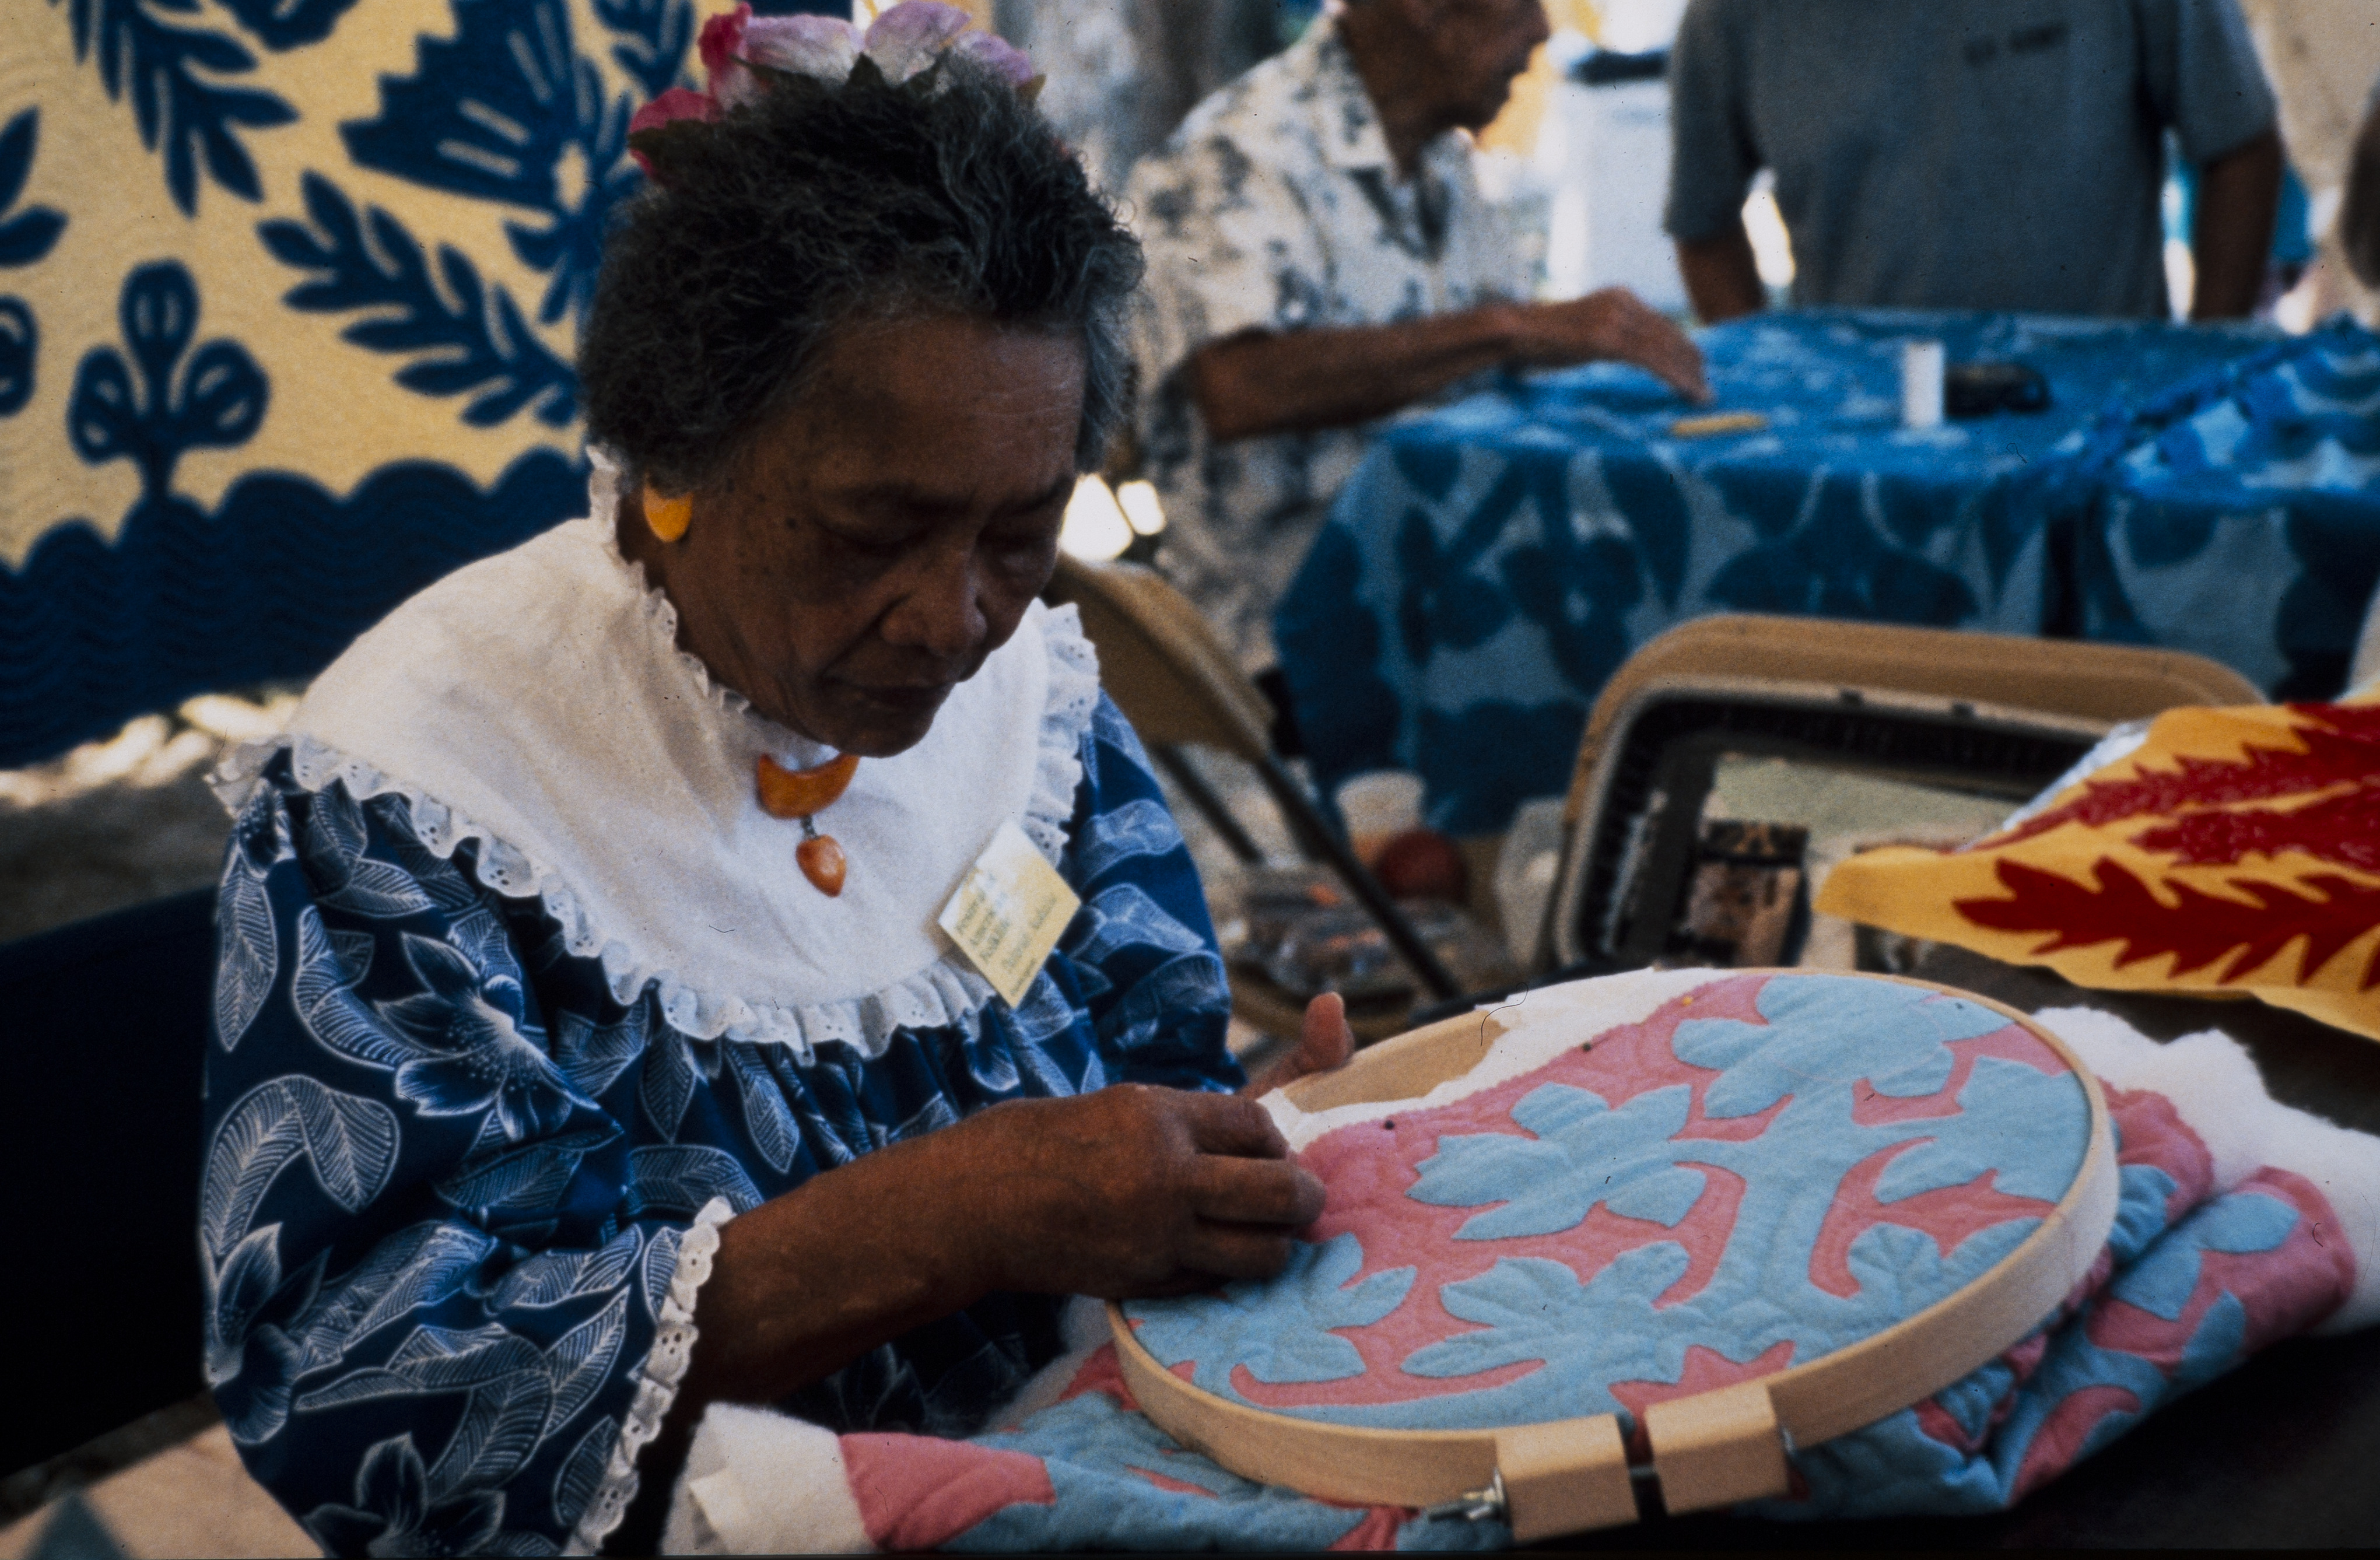 Festival participant seated quilting a quilt in a circular wooden frame.